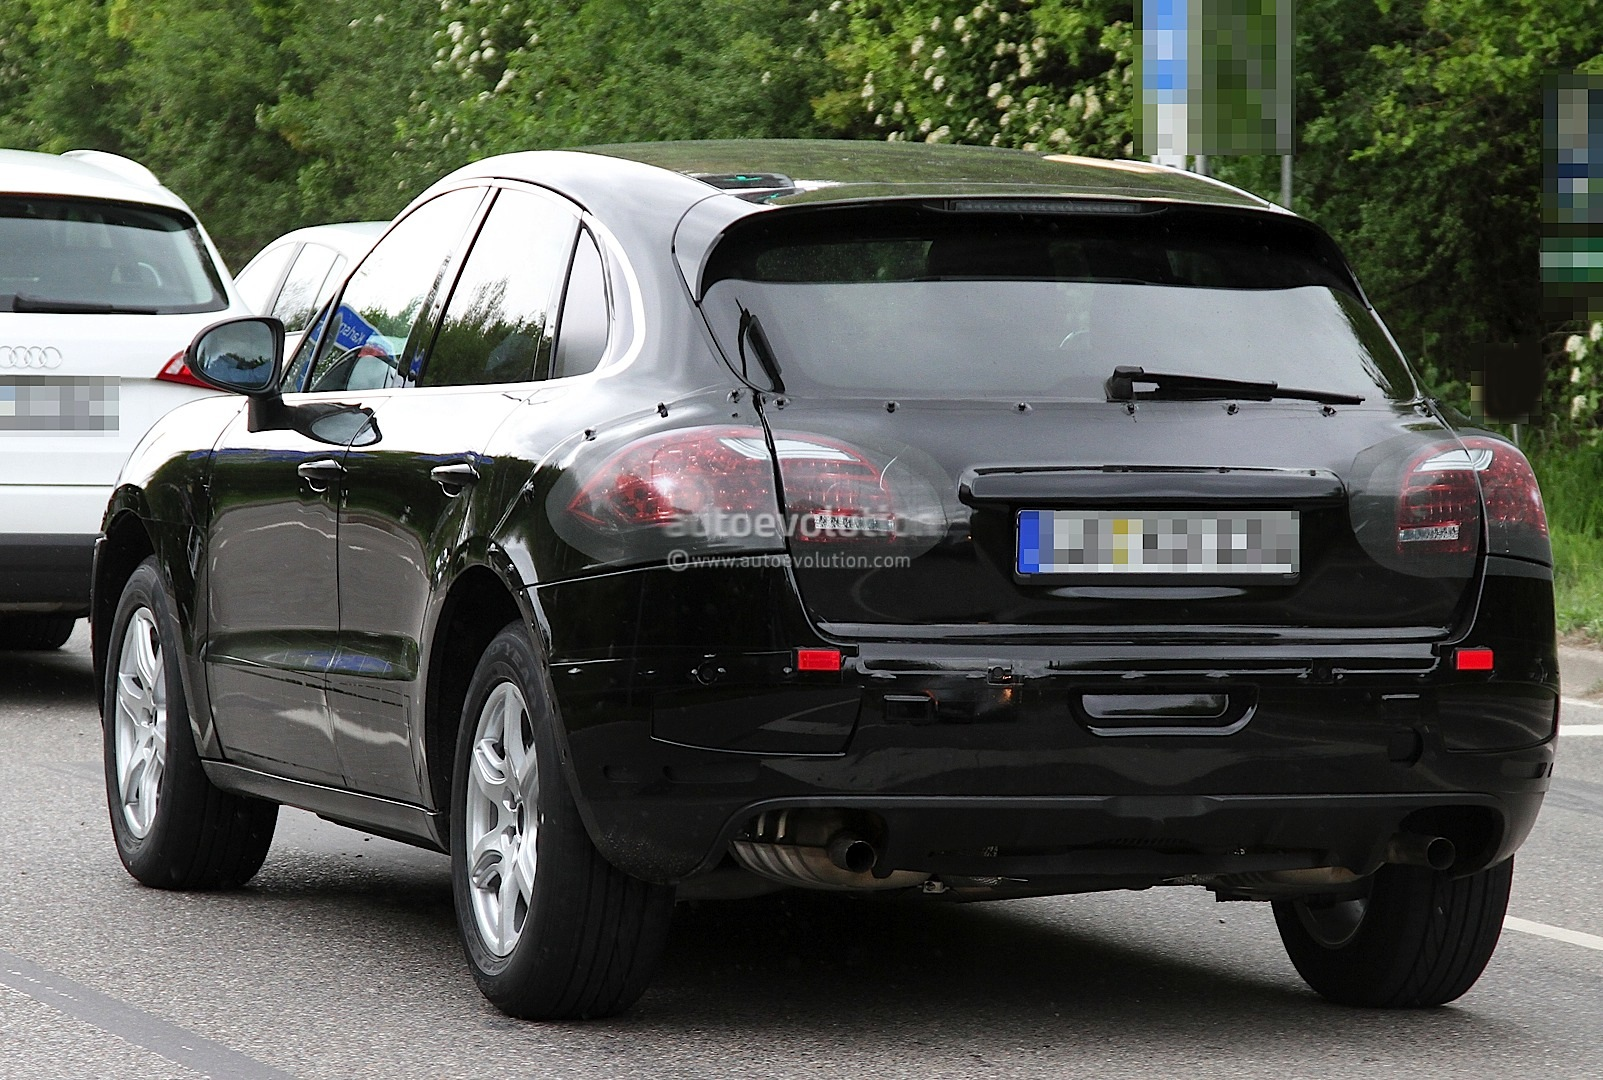 spyshots-porsche-macan-first-photos_7